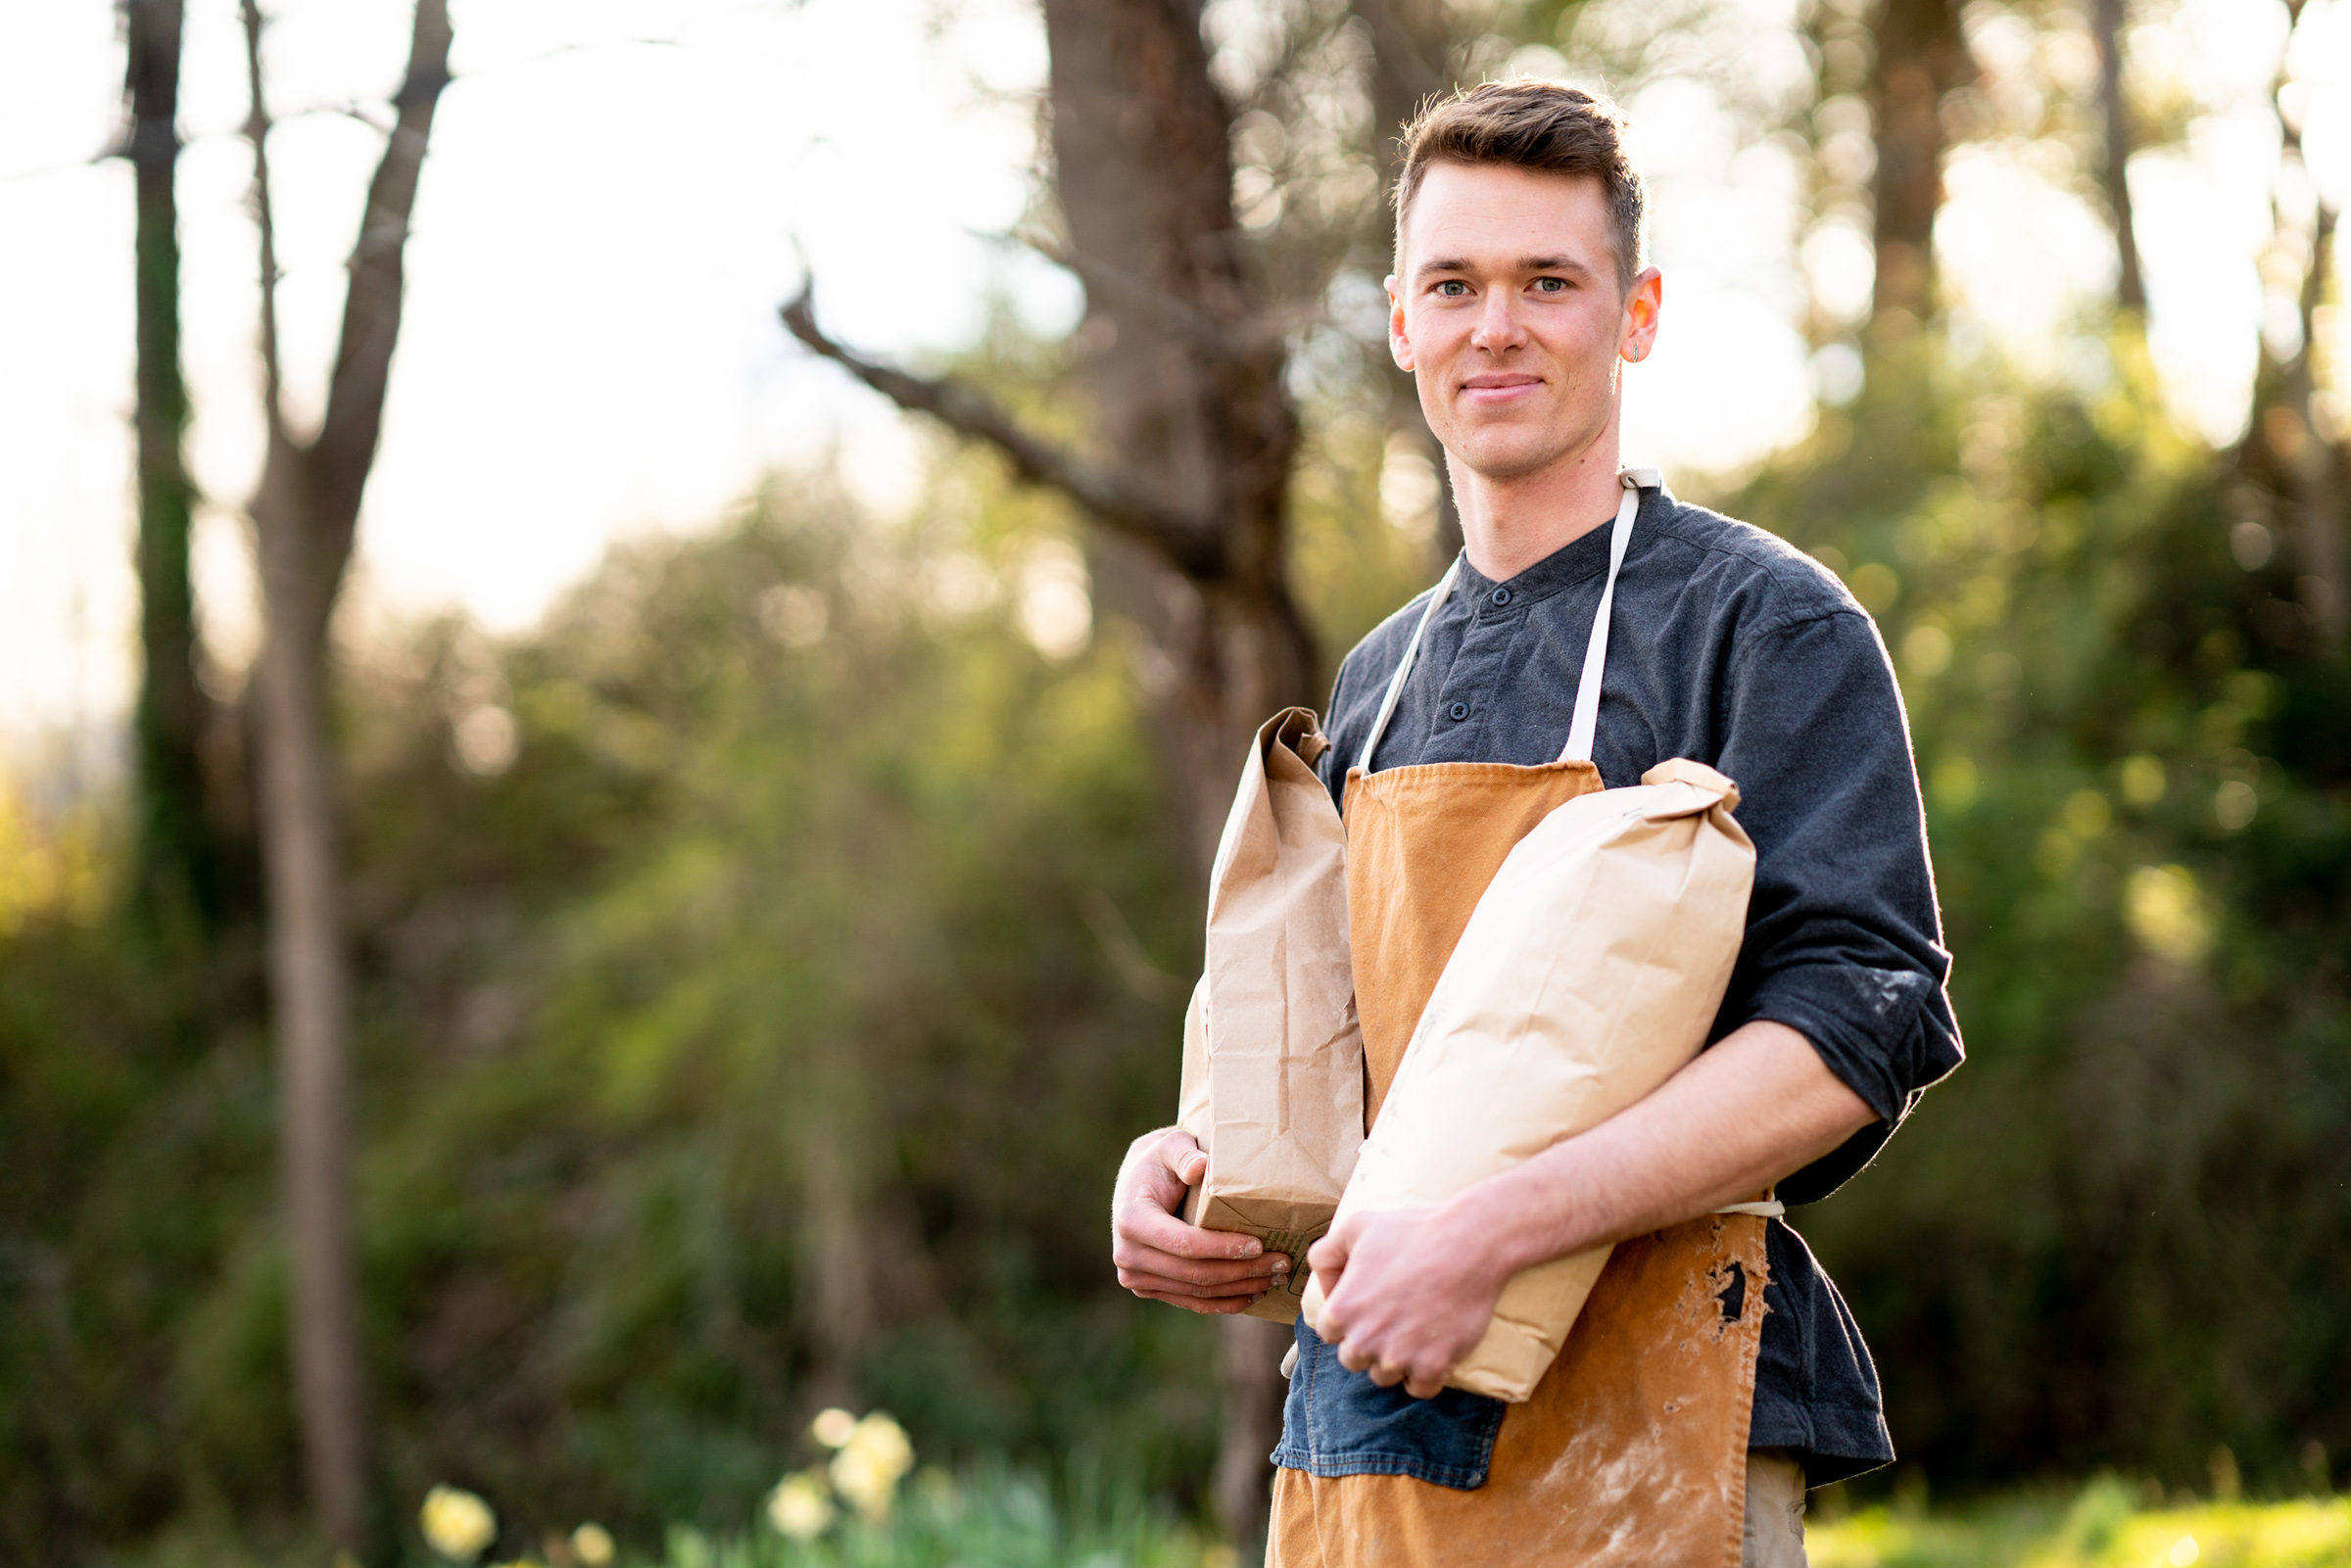 Brennan's fascination with food culture and history was catalyzed by a trip to Western Europe in 2009 to study communal brick ovens. He began baking bread soon after, baking out of his father's own brick oven and selling at local farmers markets during his high school summers. He has a degree from Whitman College in Environmental Humanities—which for him meant exploring our culture's relationship to food—and he has worked in restaurants and bakeries in San Francisco, Portland, and Asheville. The Walnut Schoolhouse is, for him, a way to piece together those disparate experiences, combining his curiosity in food studies with his love of hands-on cooking.  Photo by Lynne Harty